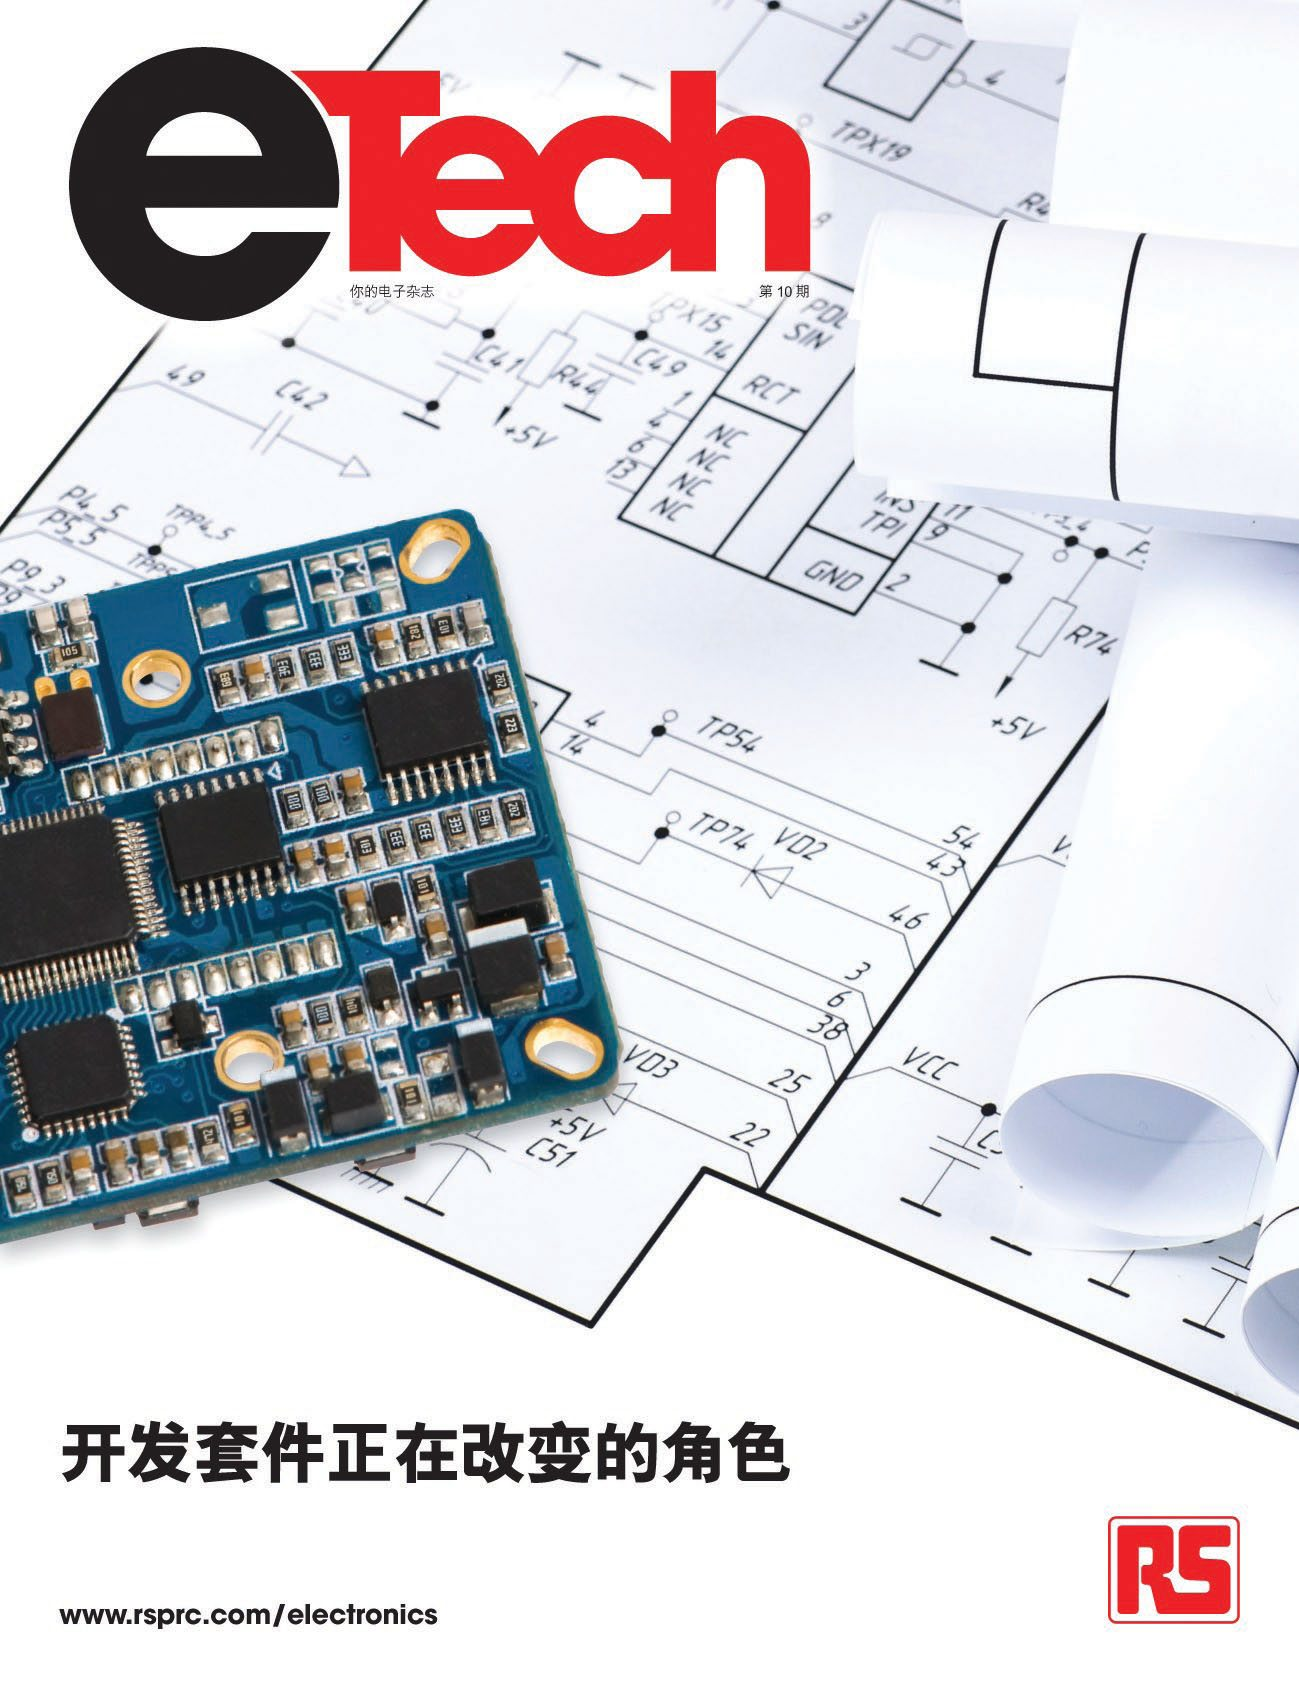 Rs Components Releases Ipad App In Chinese For Its Etech Magazine Electronic Circuit